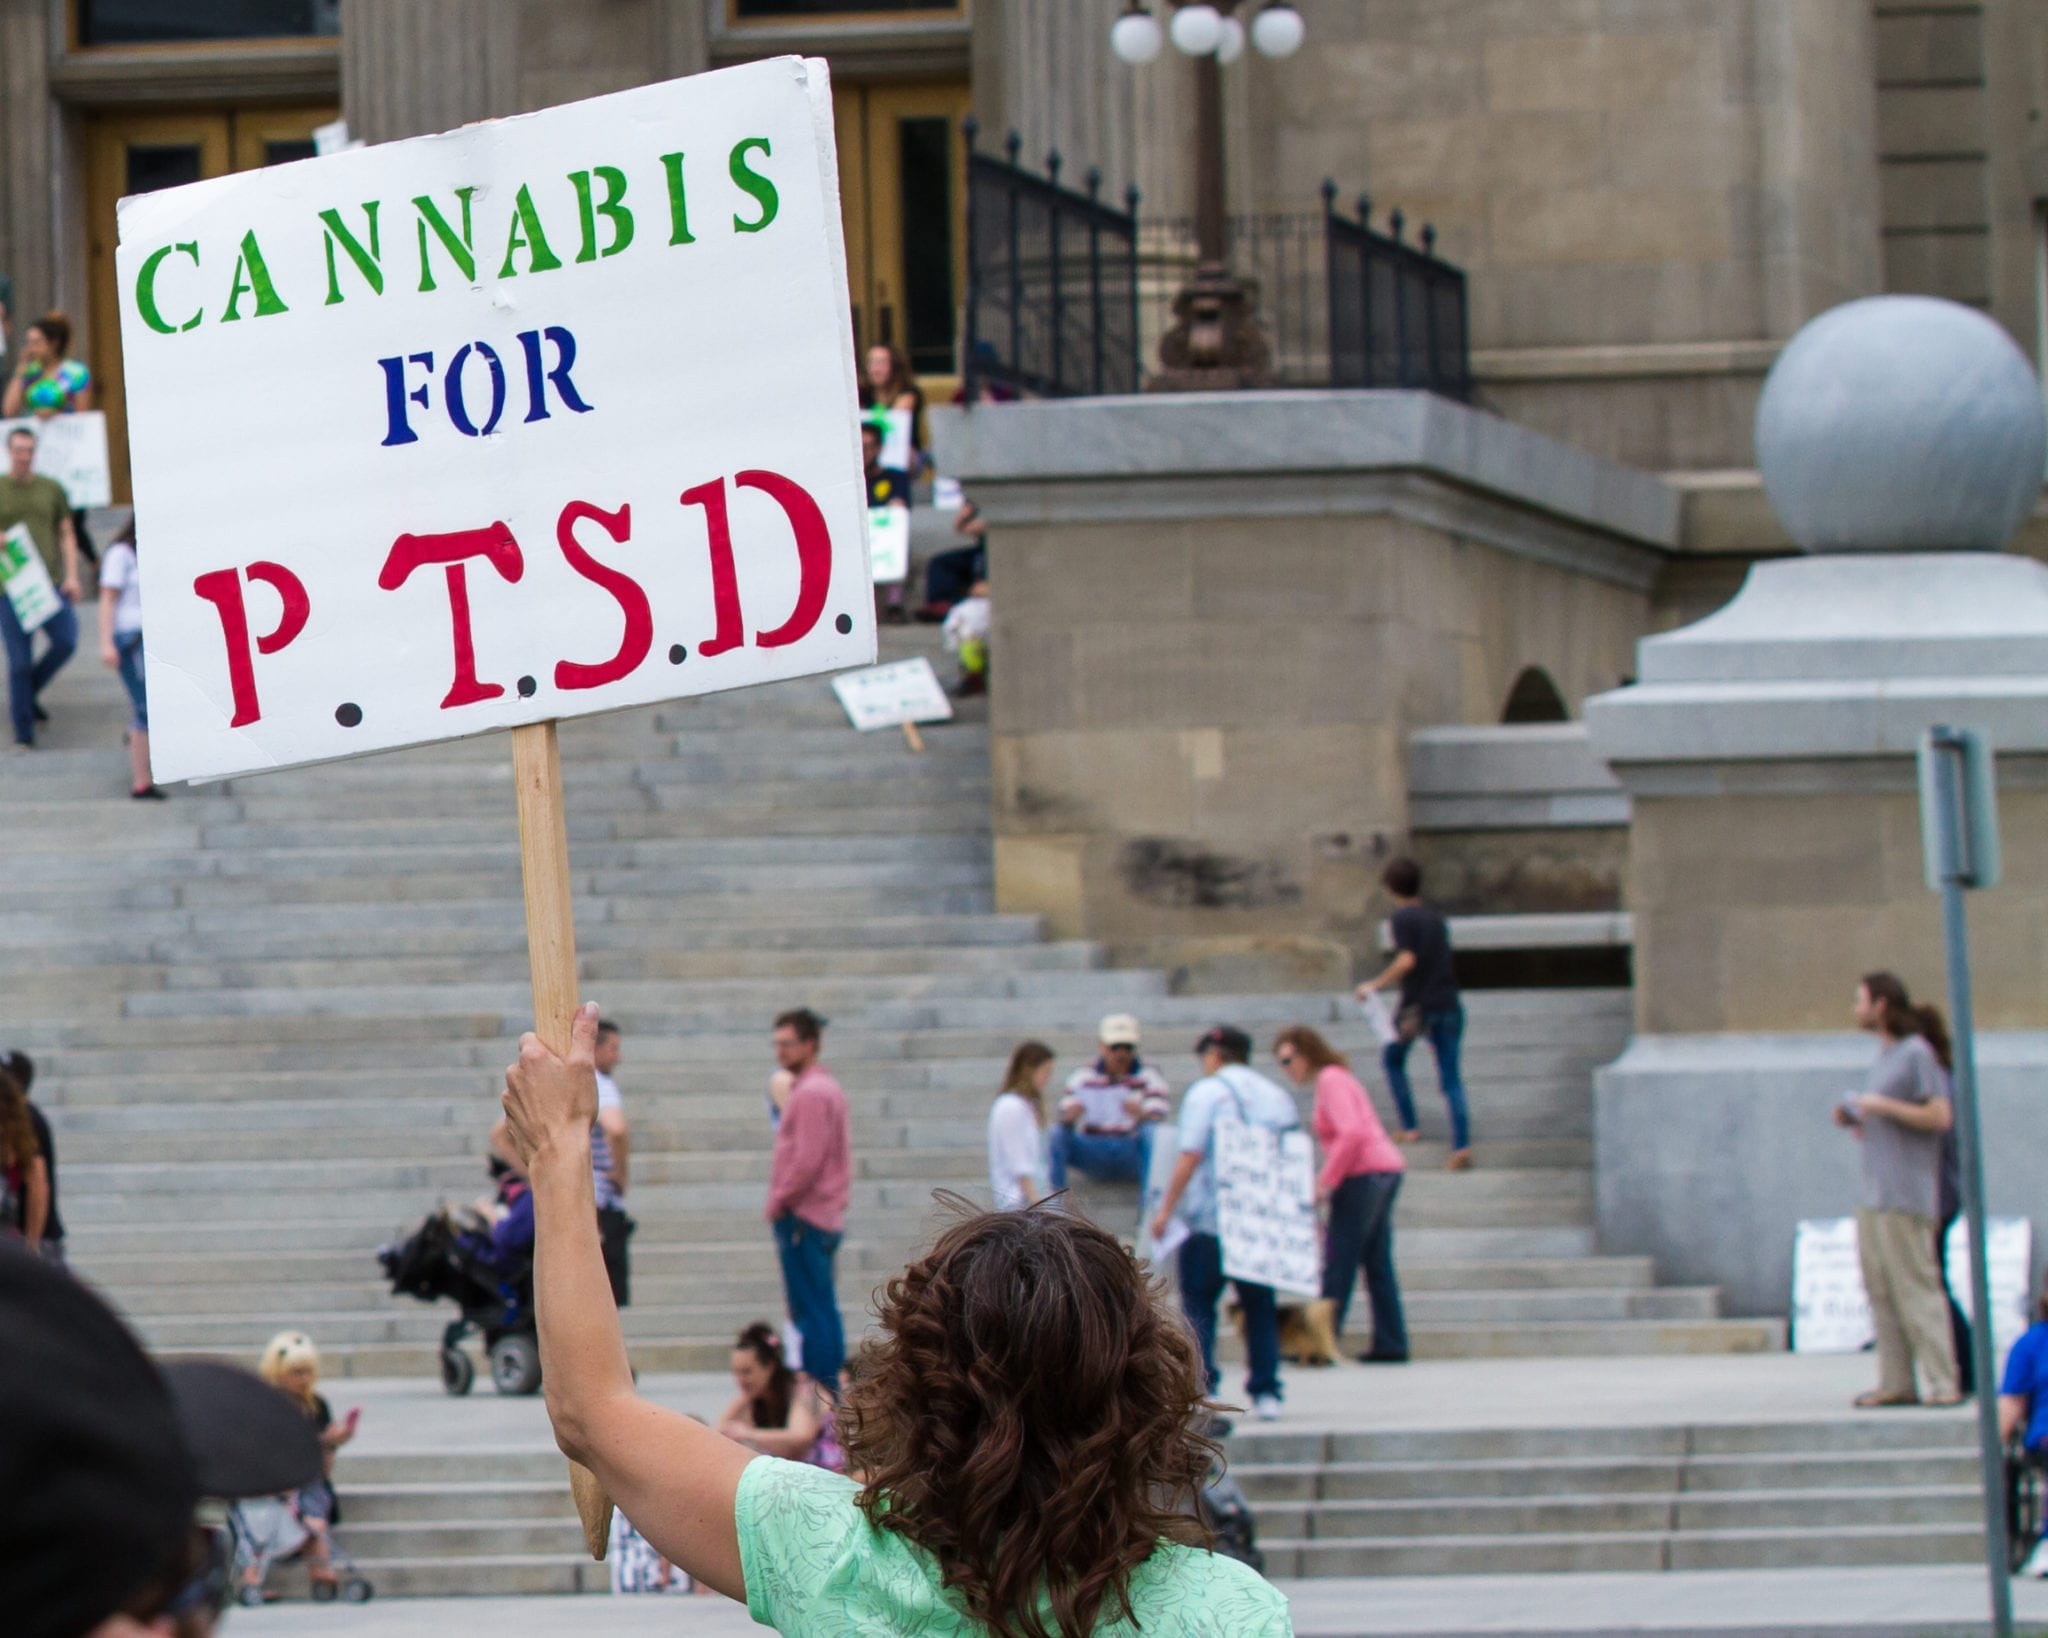 Cannabis Could Alleviate Major Depression and Suicidal Thoughts in PTSD Sufferers, Study Shows